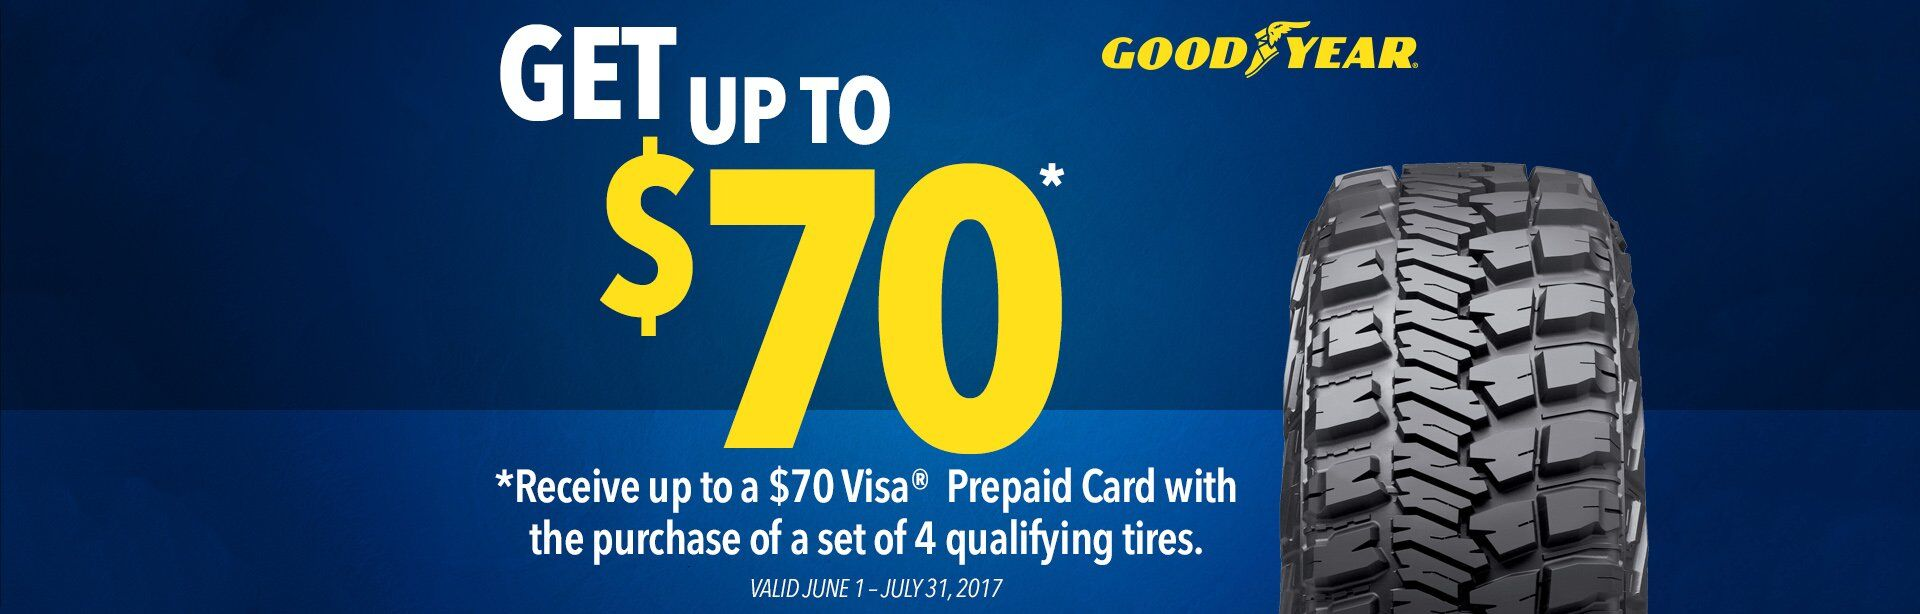 Good Year Tire Offer